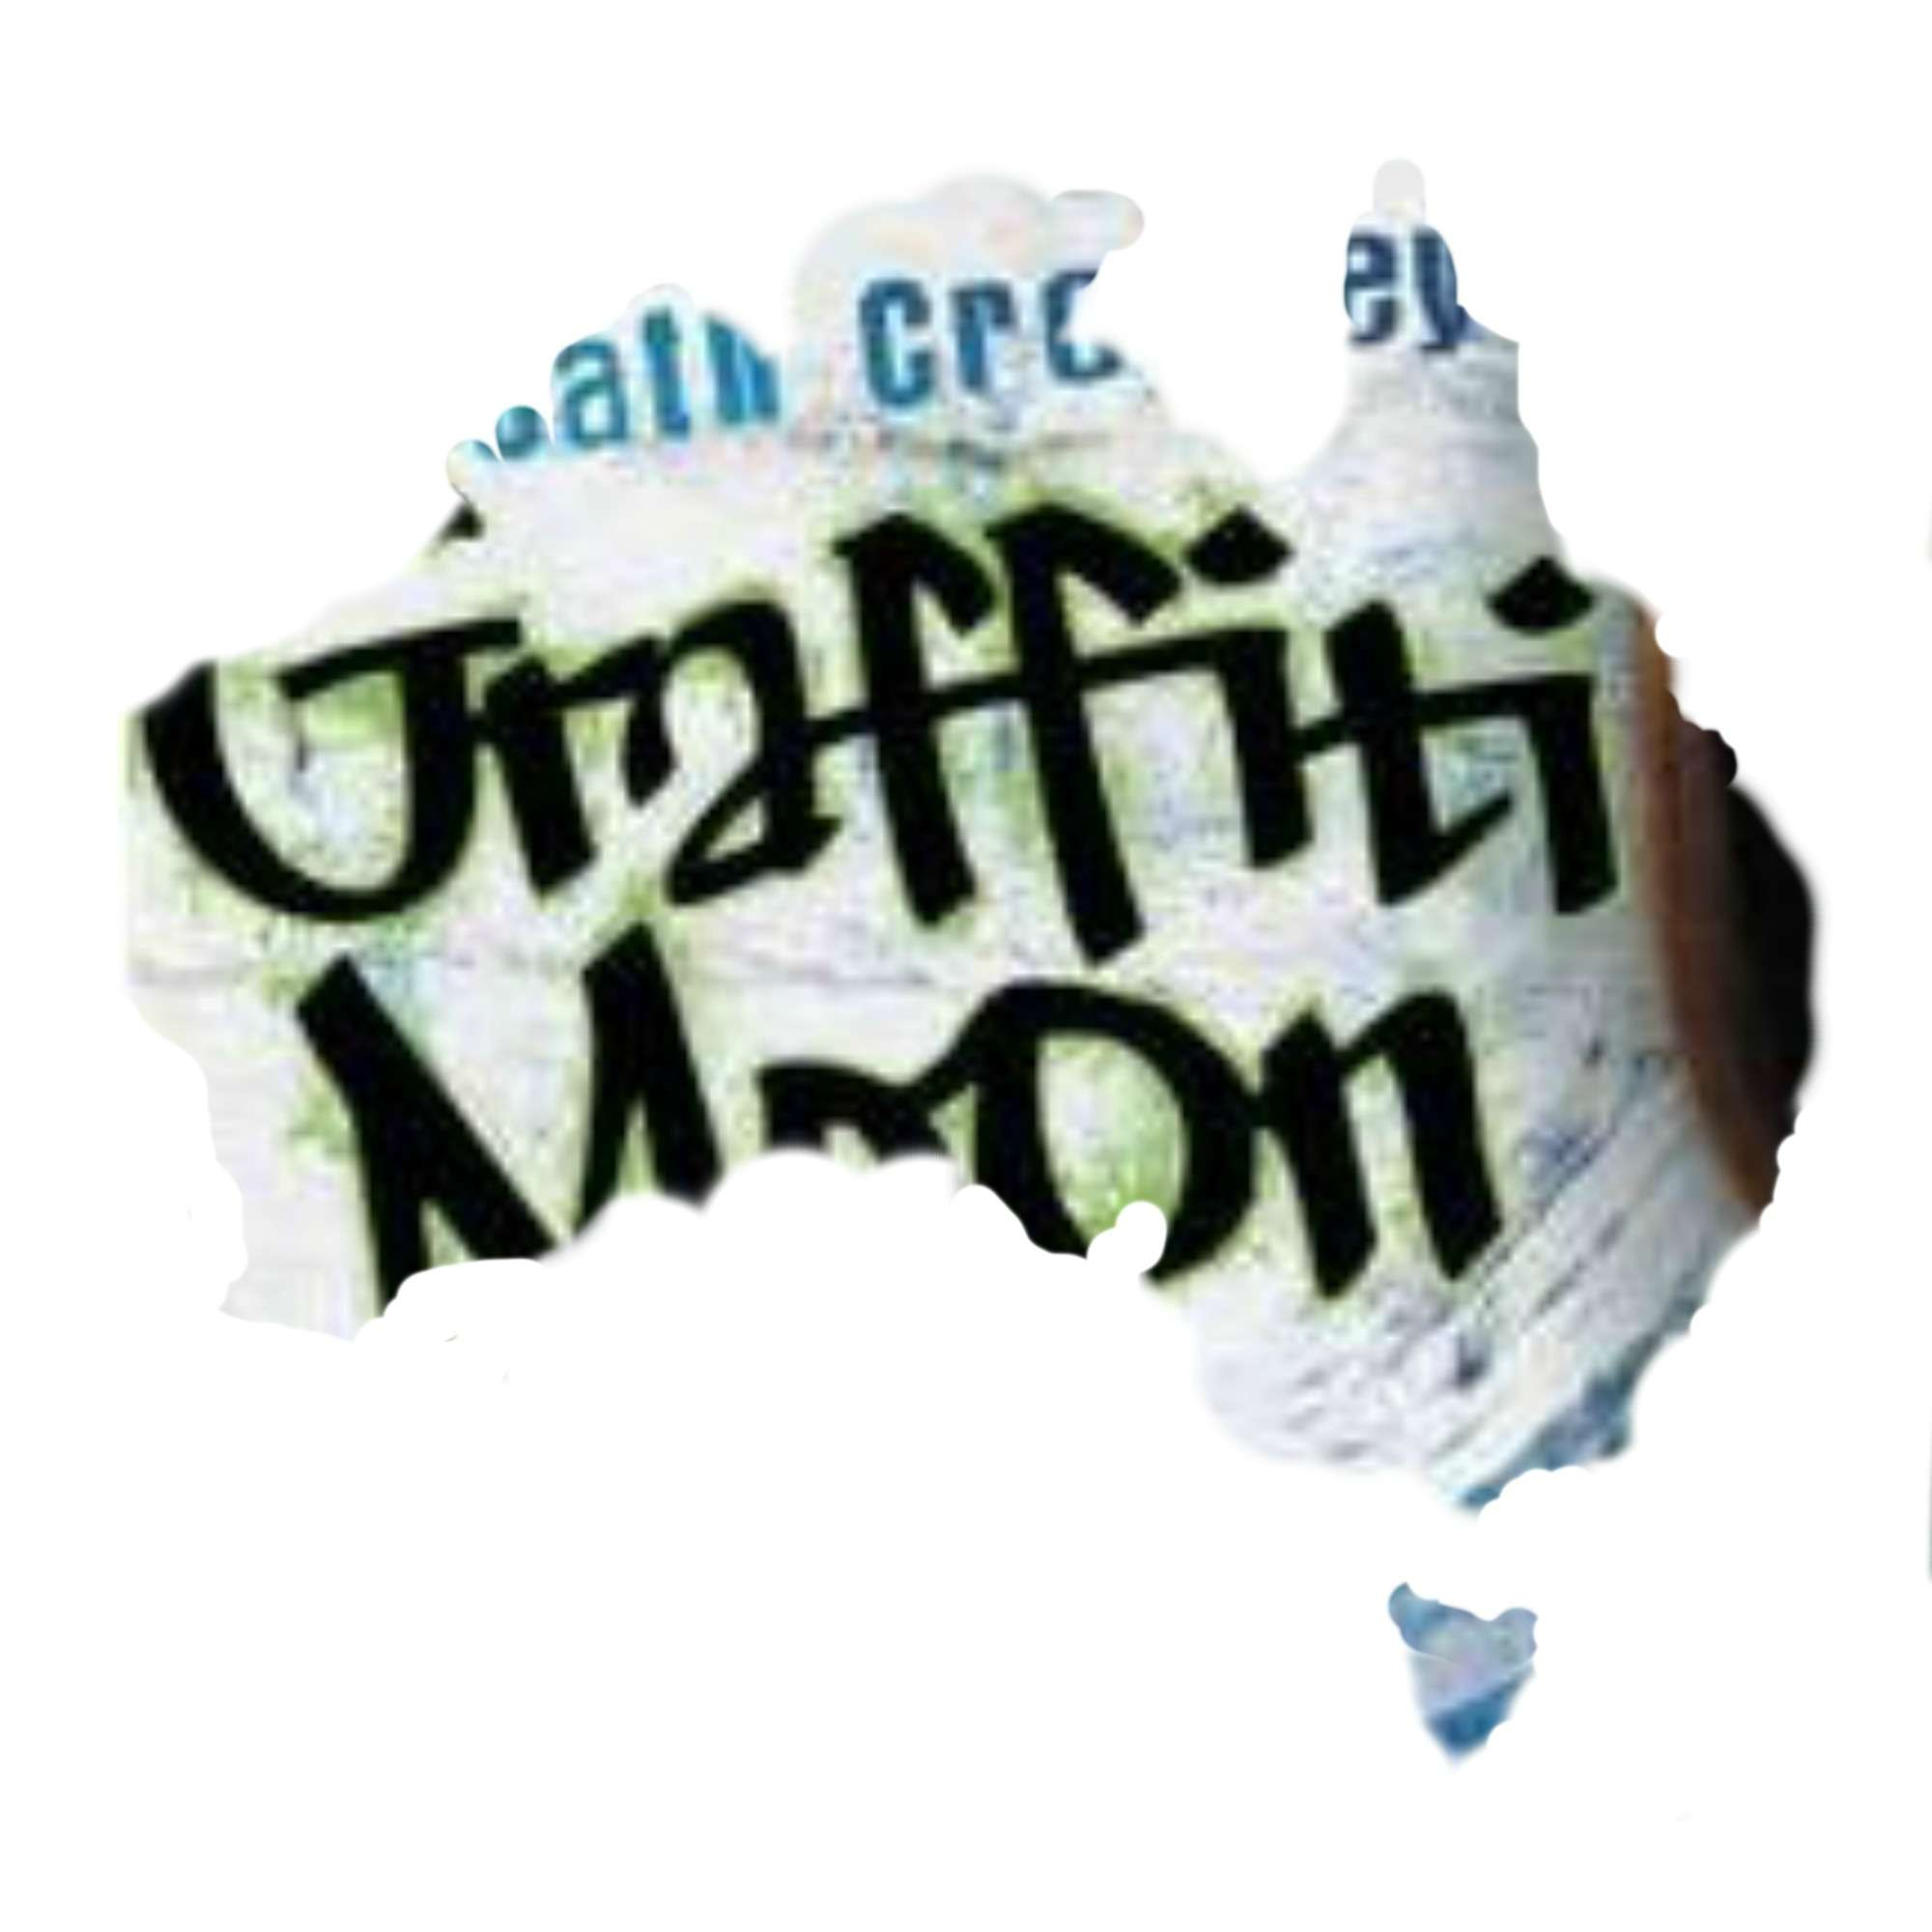 grafitti moon